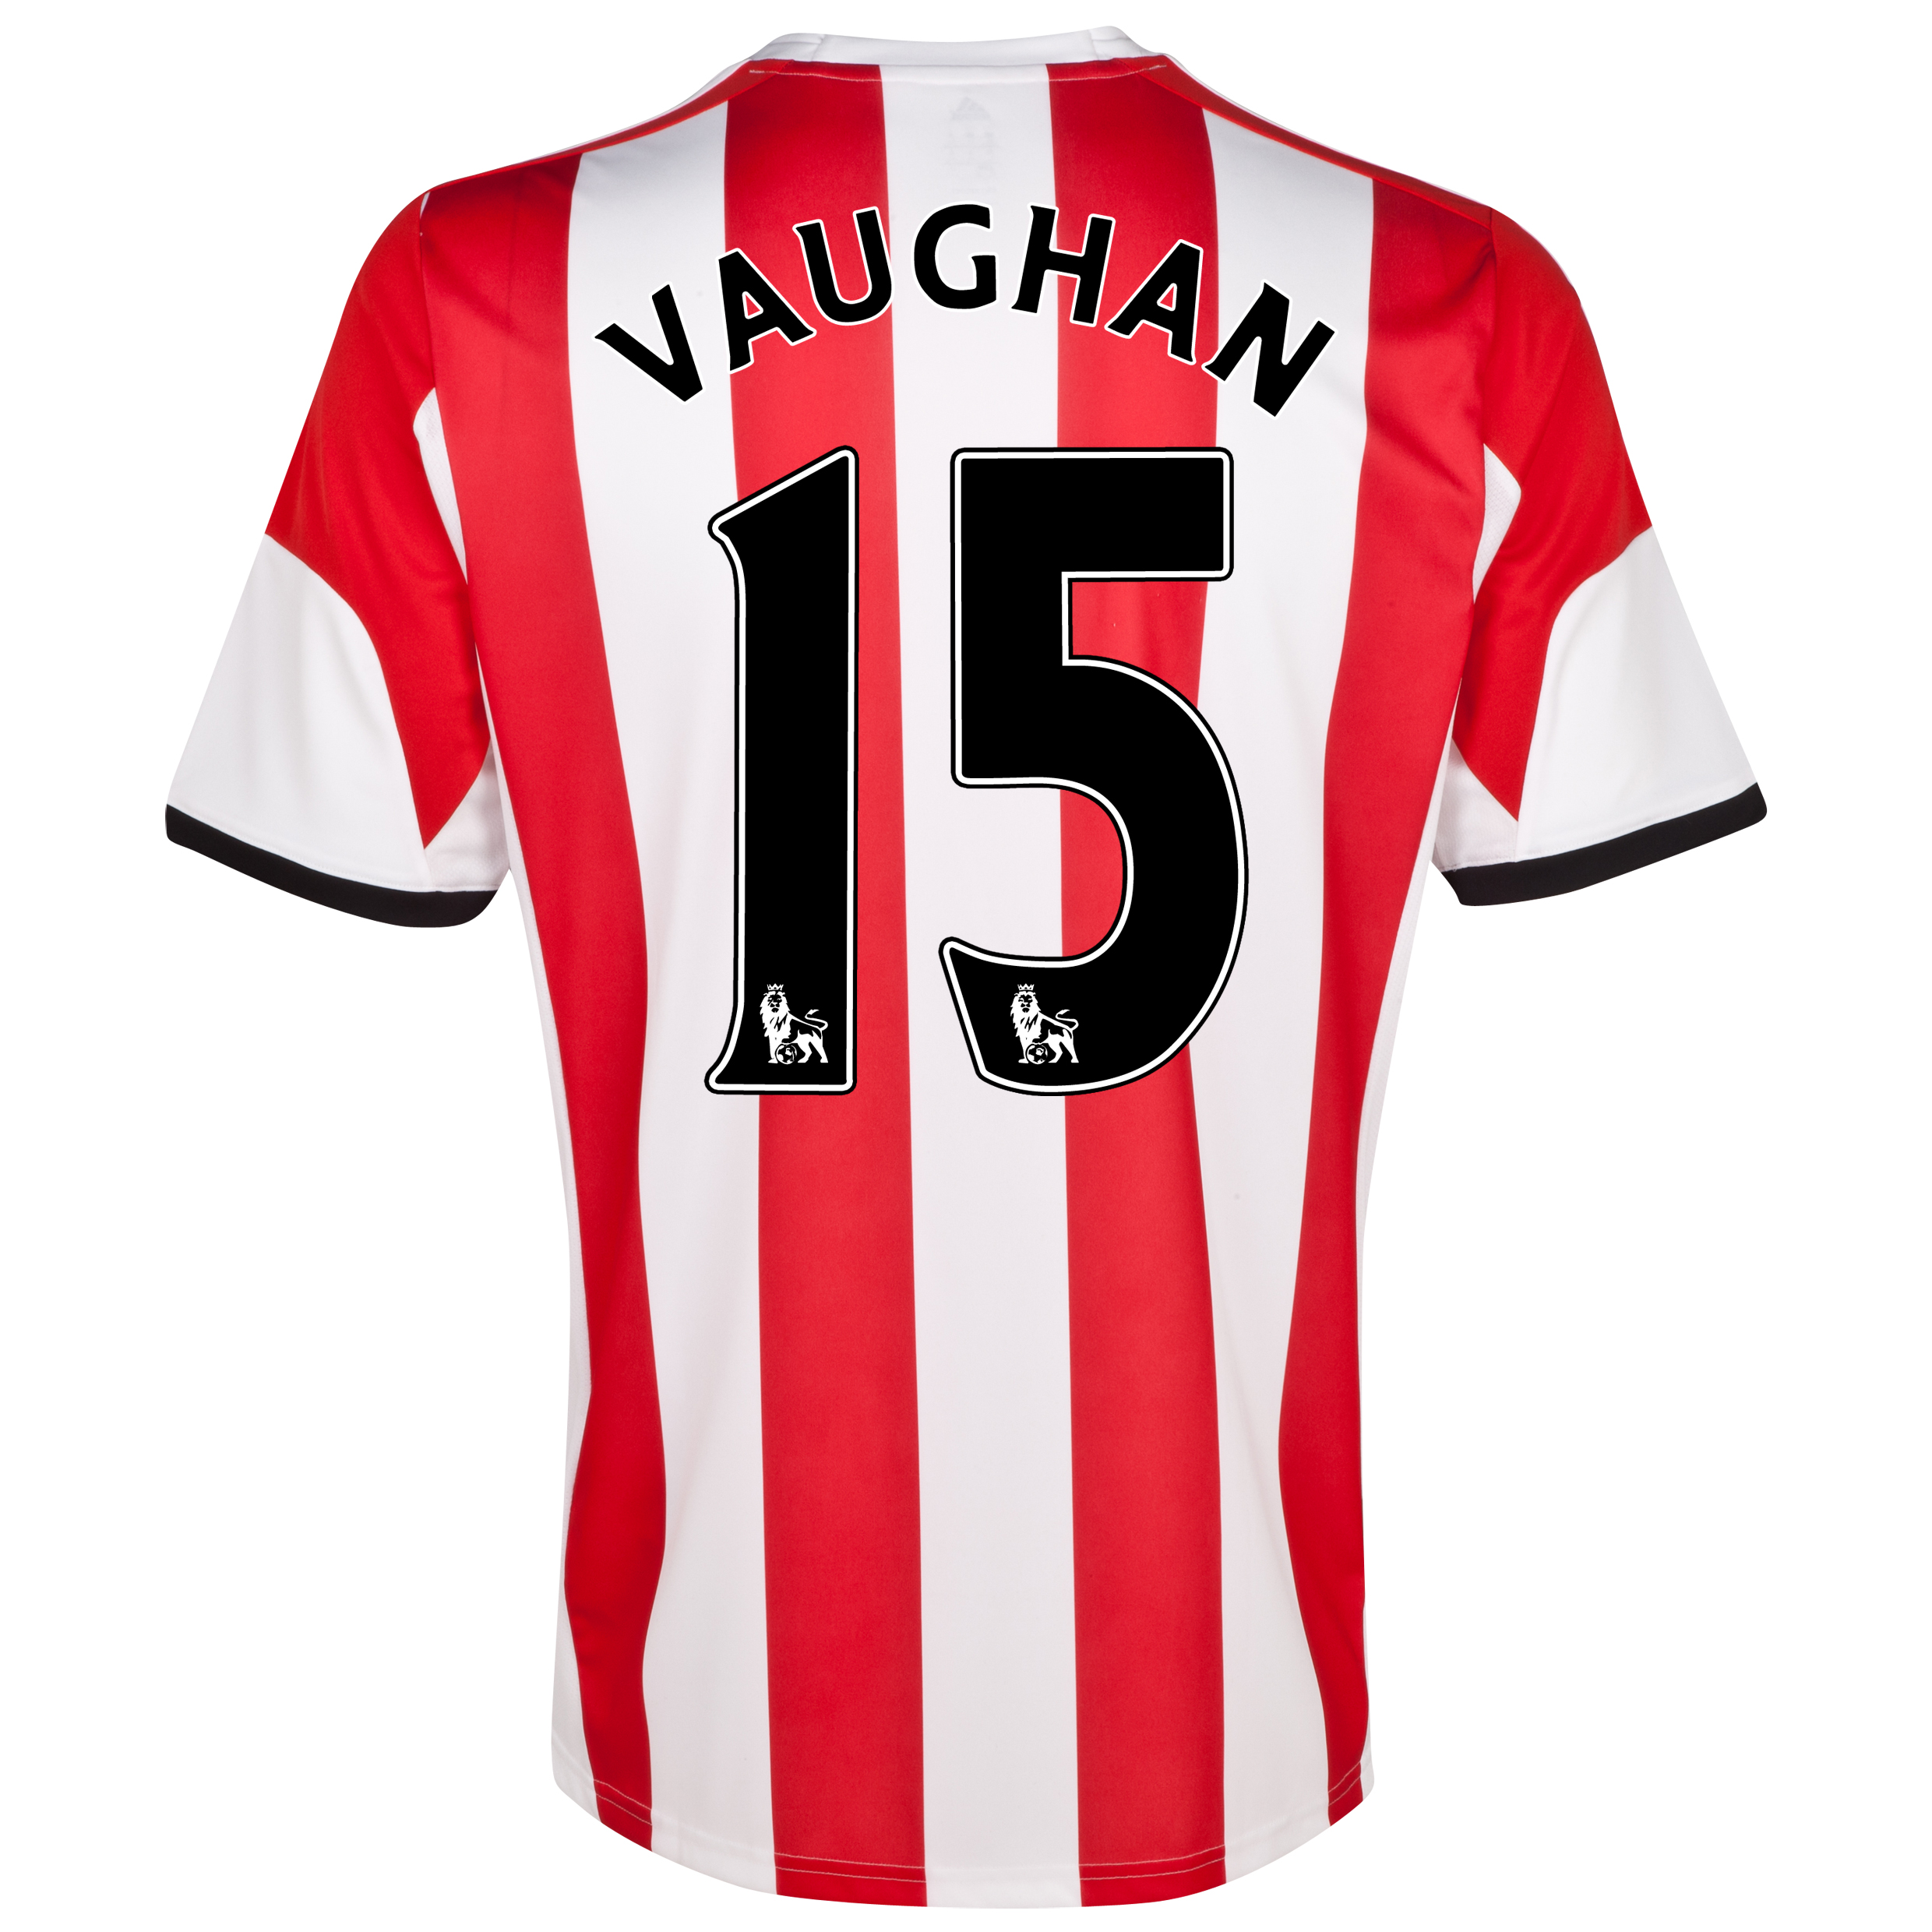 Sunderland Home Shirt 2013/14  with Vaughan 15 printing